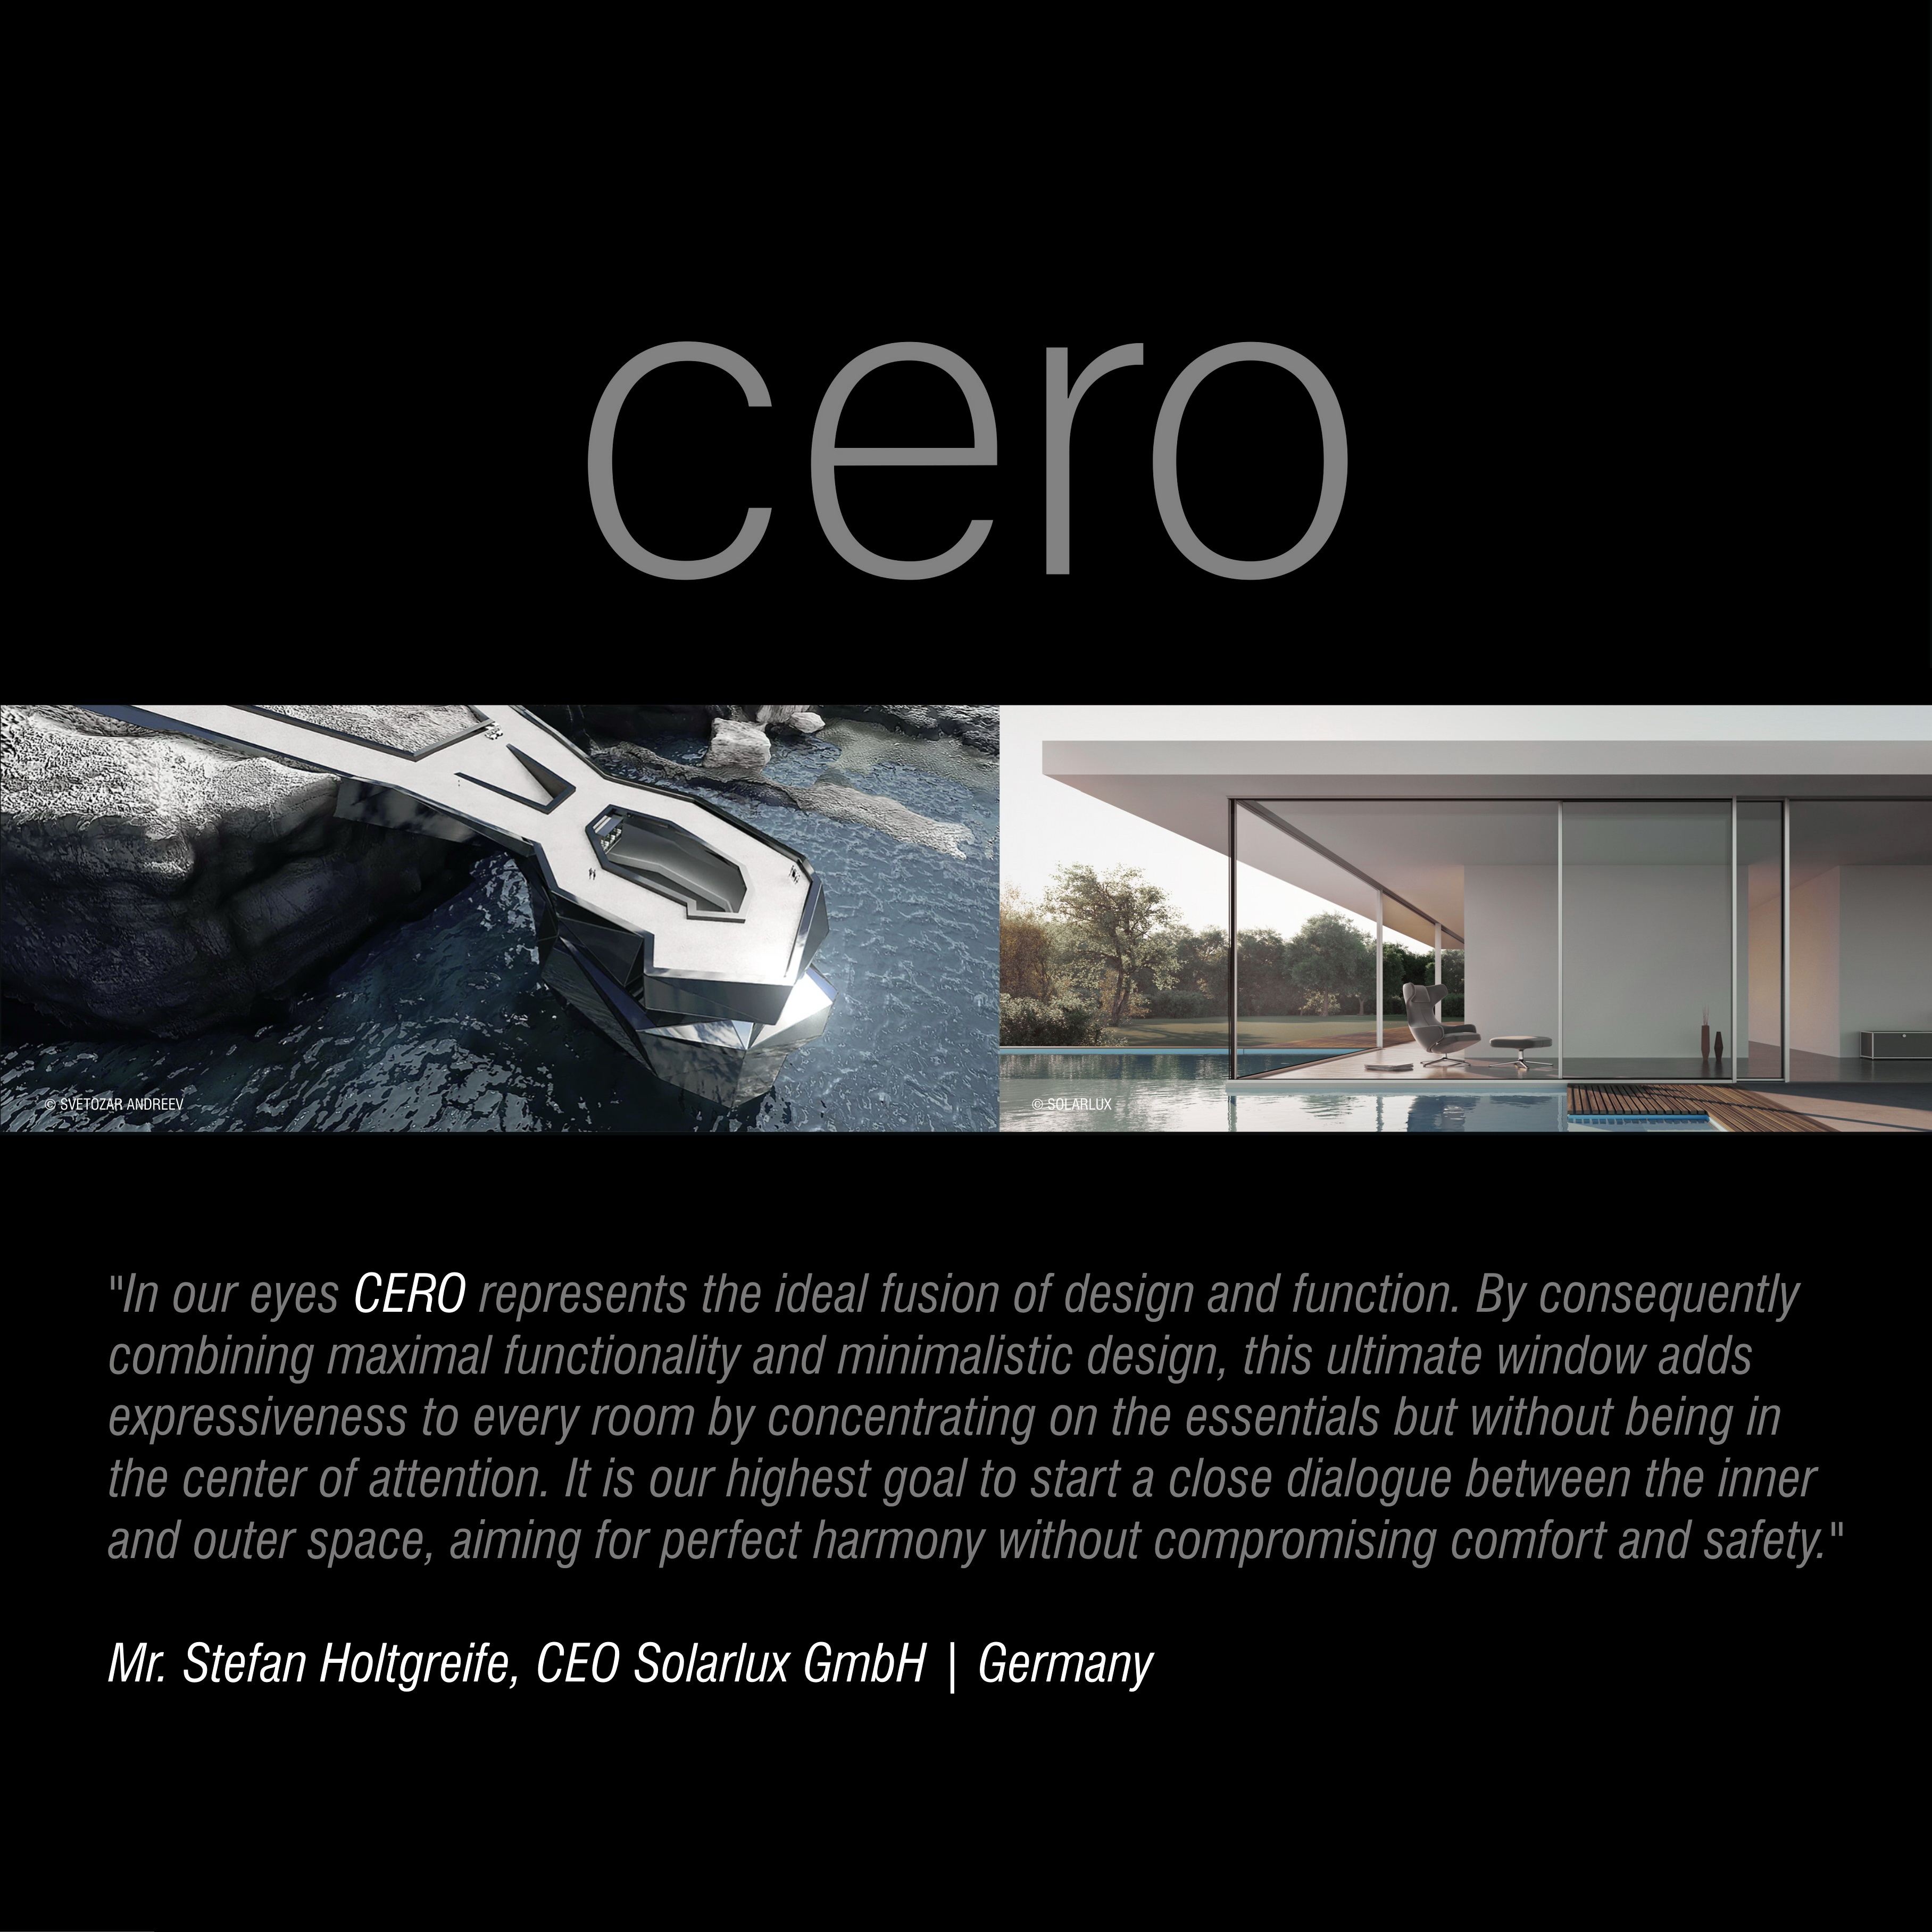 CERO BY SOLARLUX